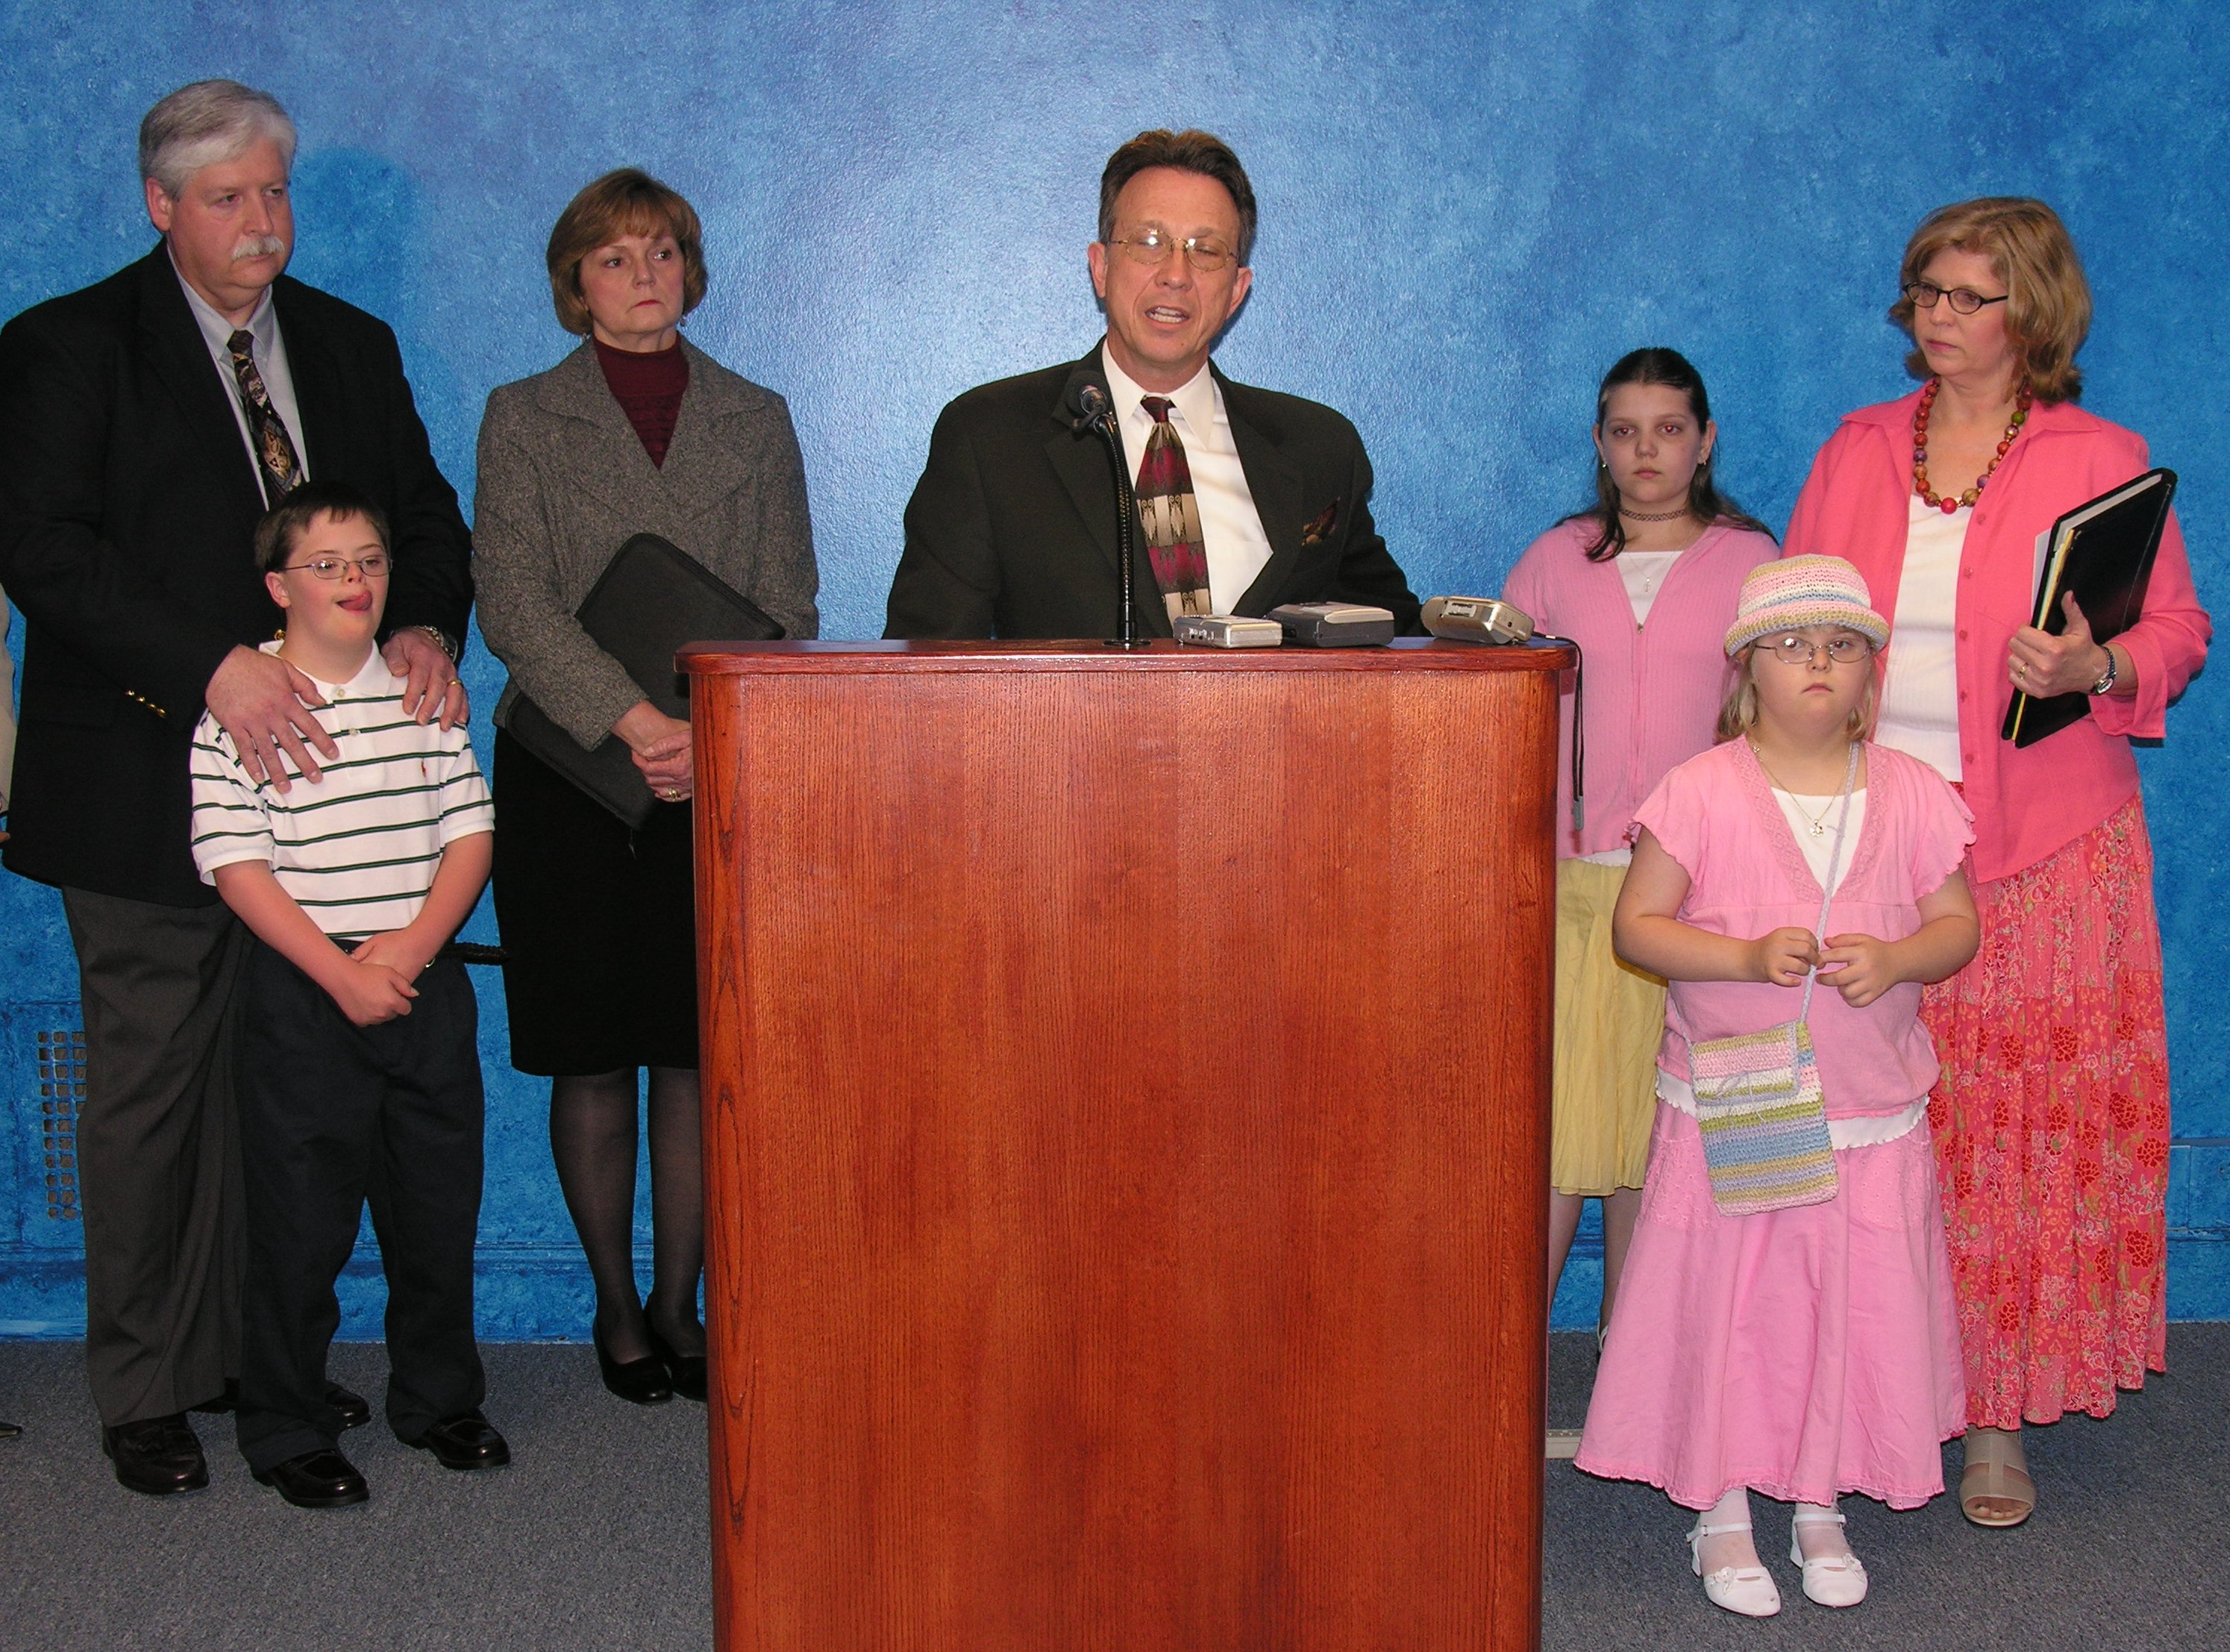 Sen. James Williamson and family members of children with Down syndrome spoke in support of SB 714 on Tuesday.